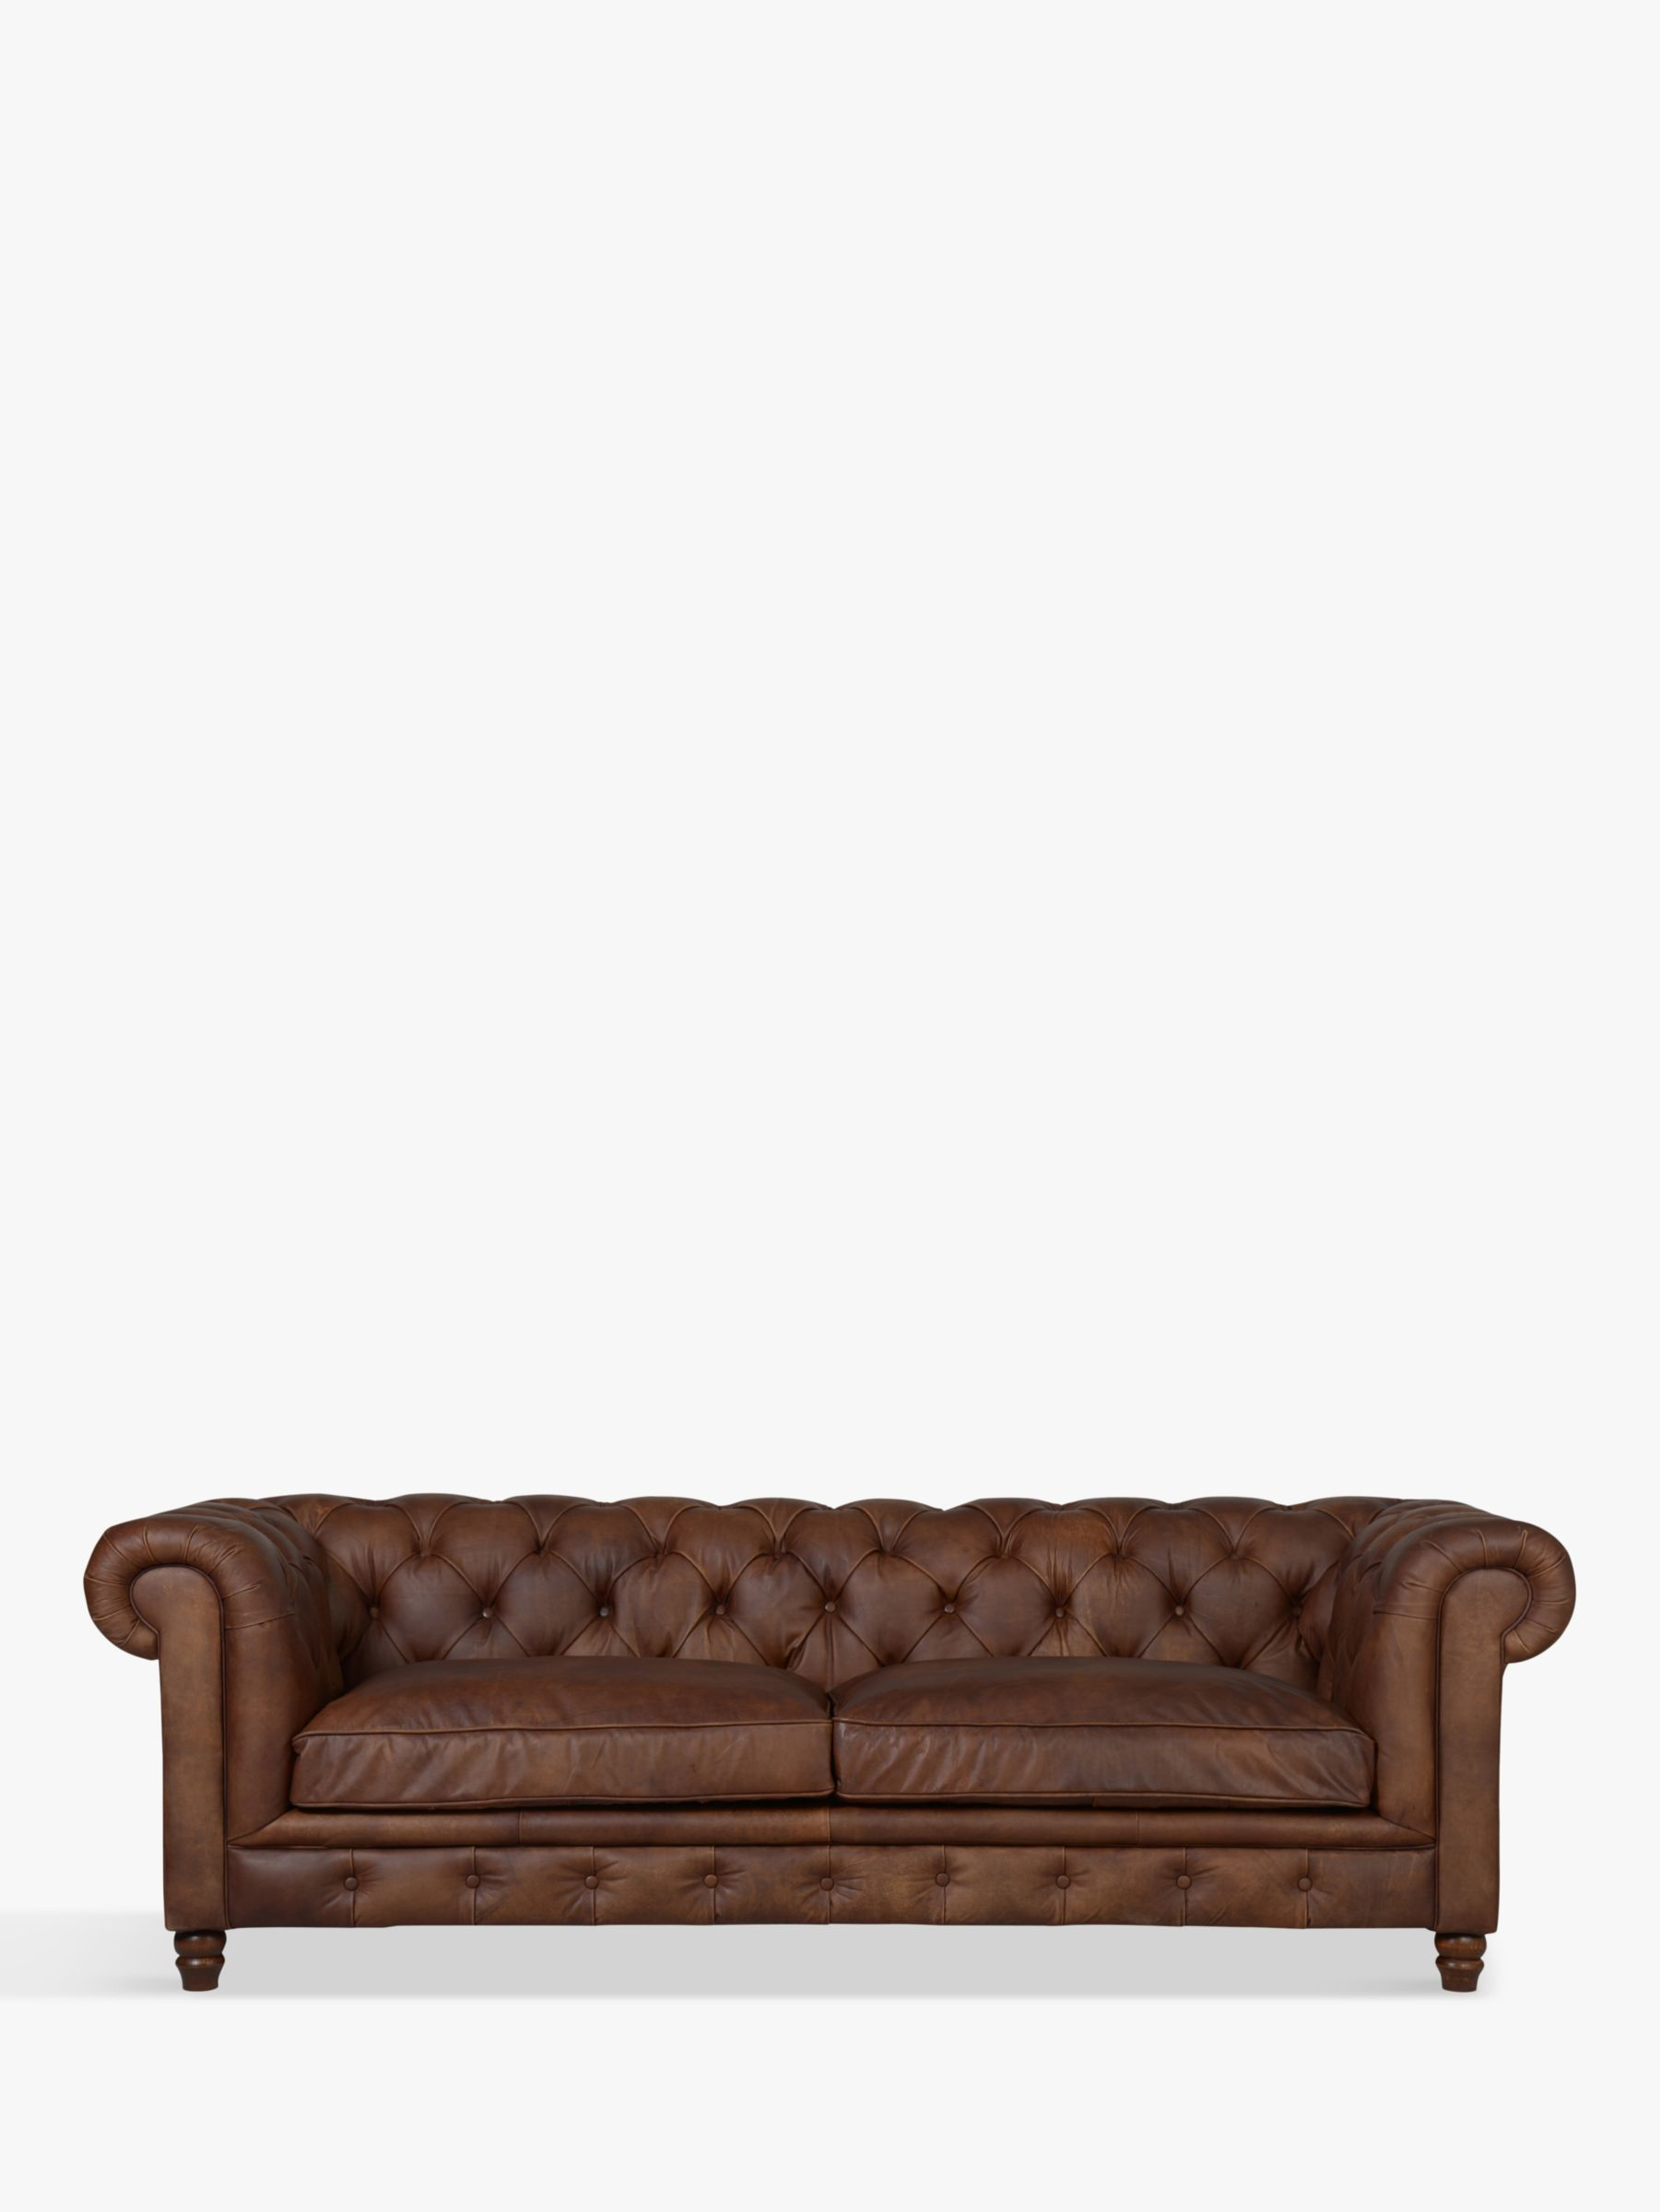 scotch and sofa sofas seattle halo earle aniline leather chesterfield grand